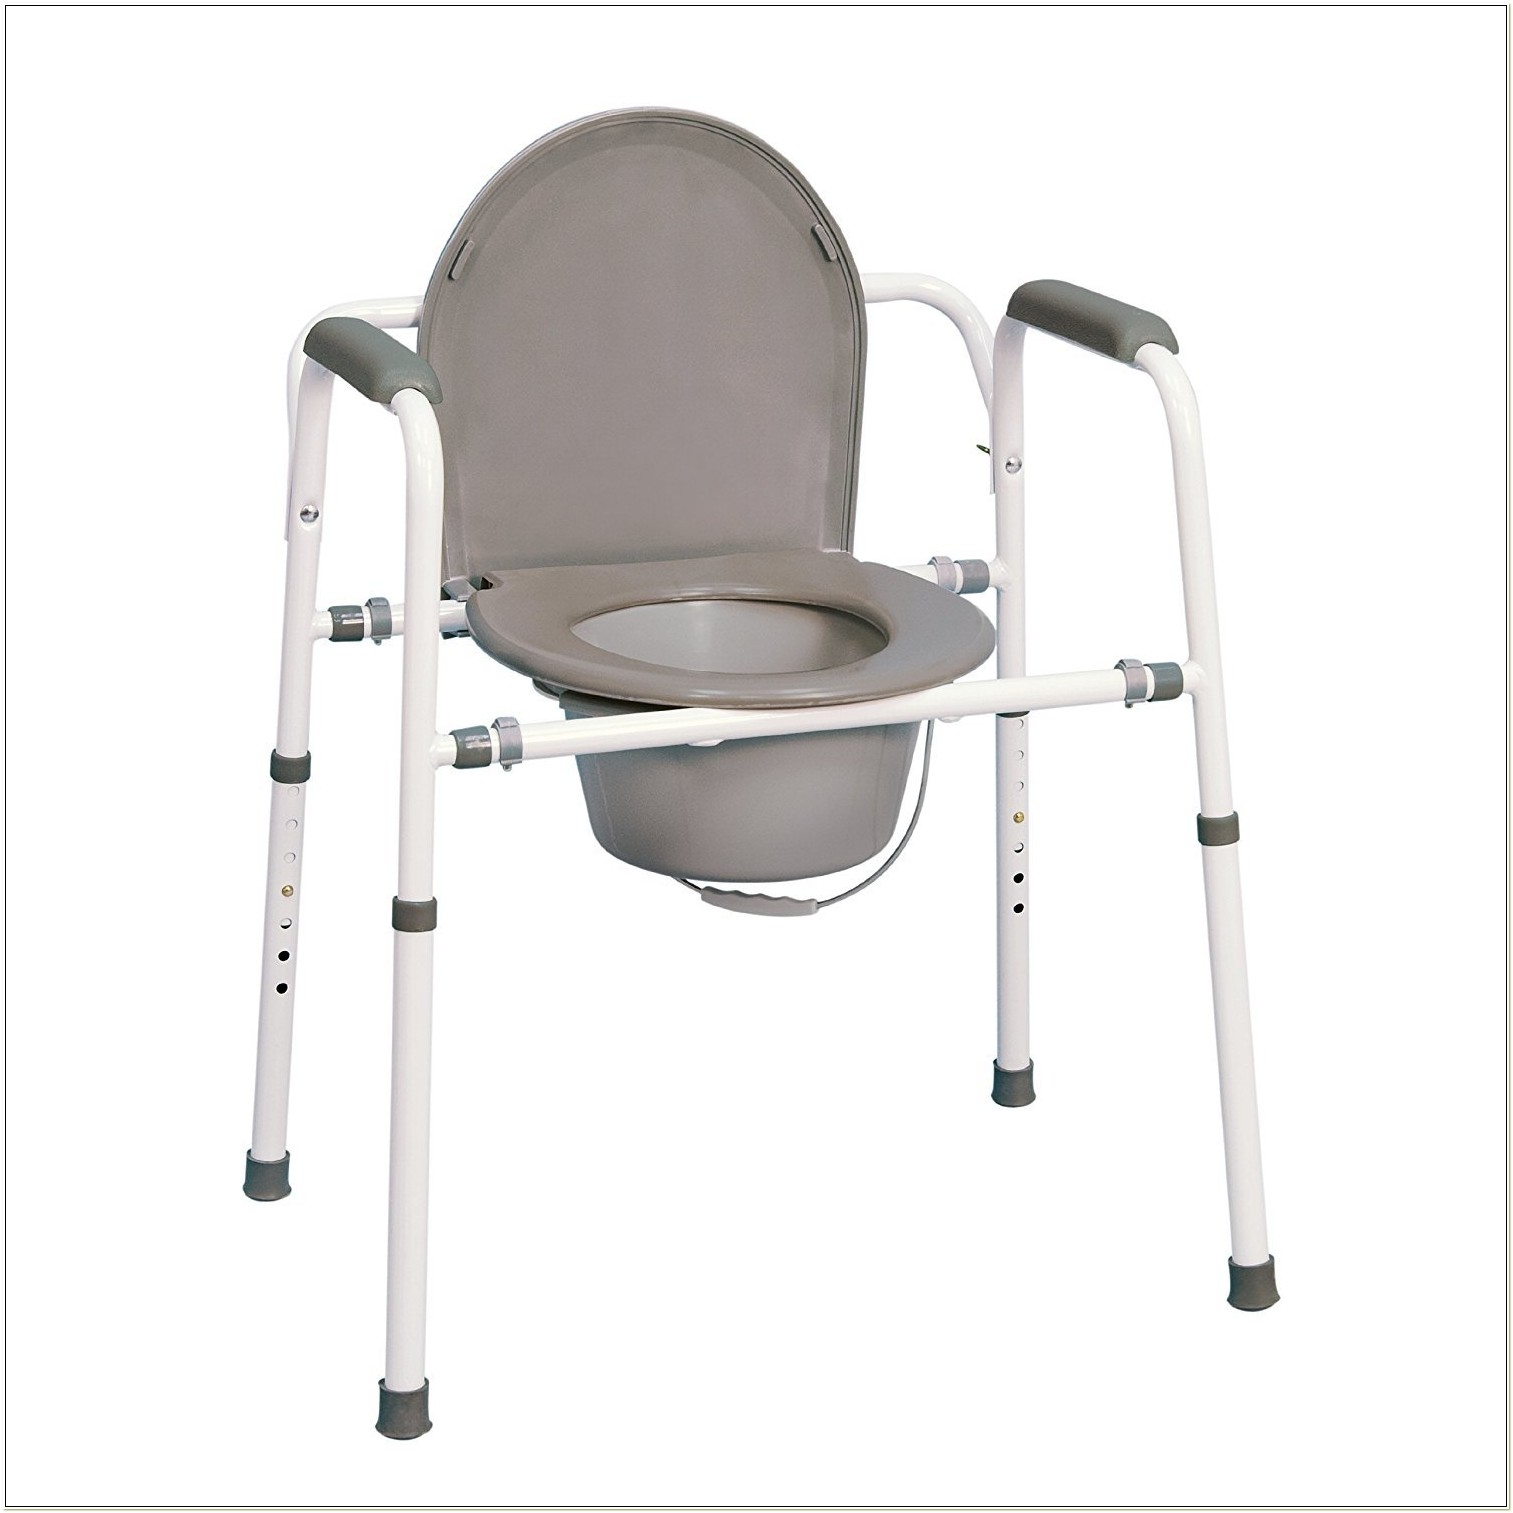 Portable Potty Chair For Adults